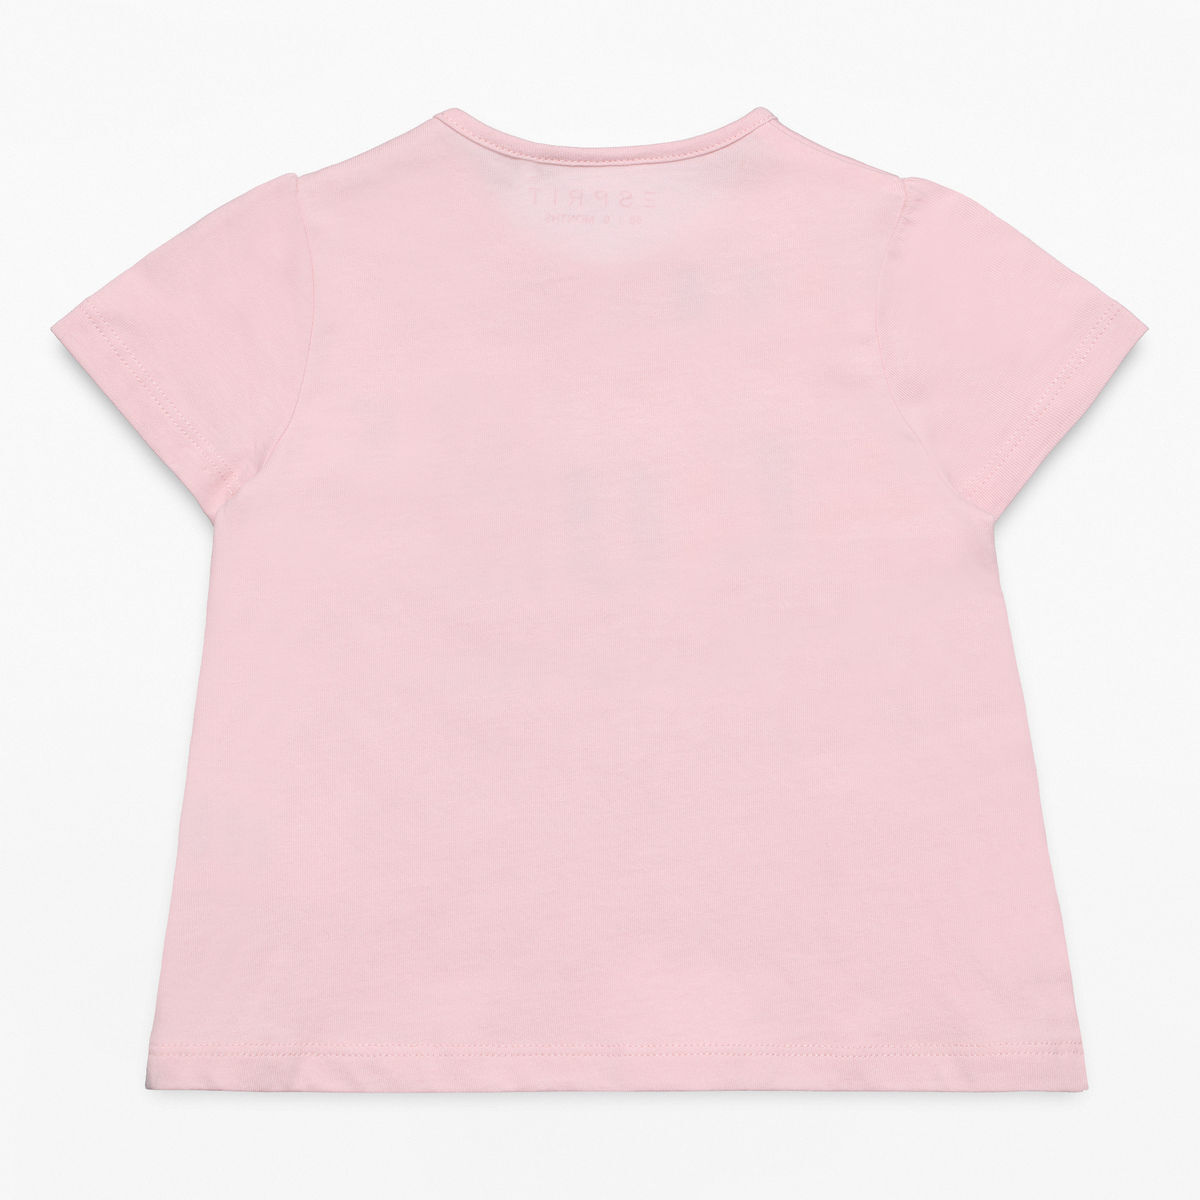 low priced 766a4 e8ae9 Baby T Shirt Druck Online – EDGE Engineering and Consulting ...